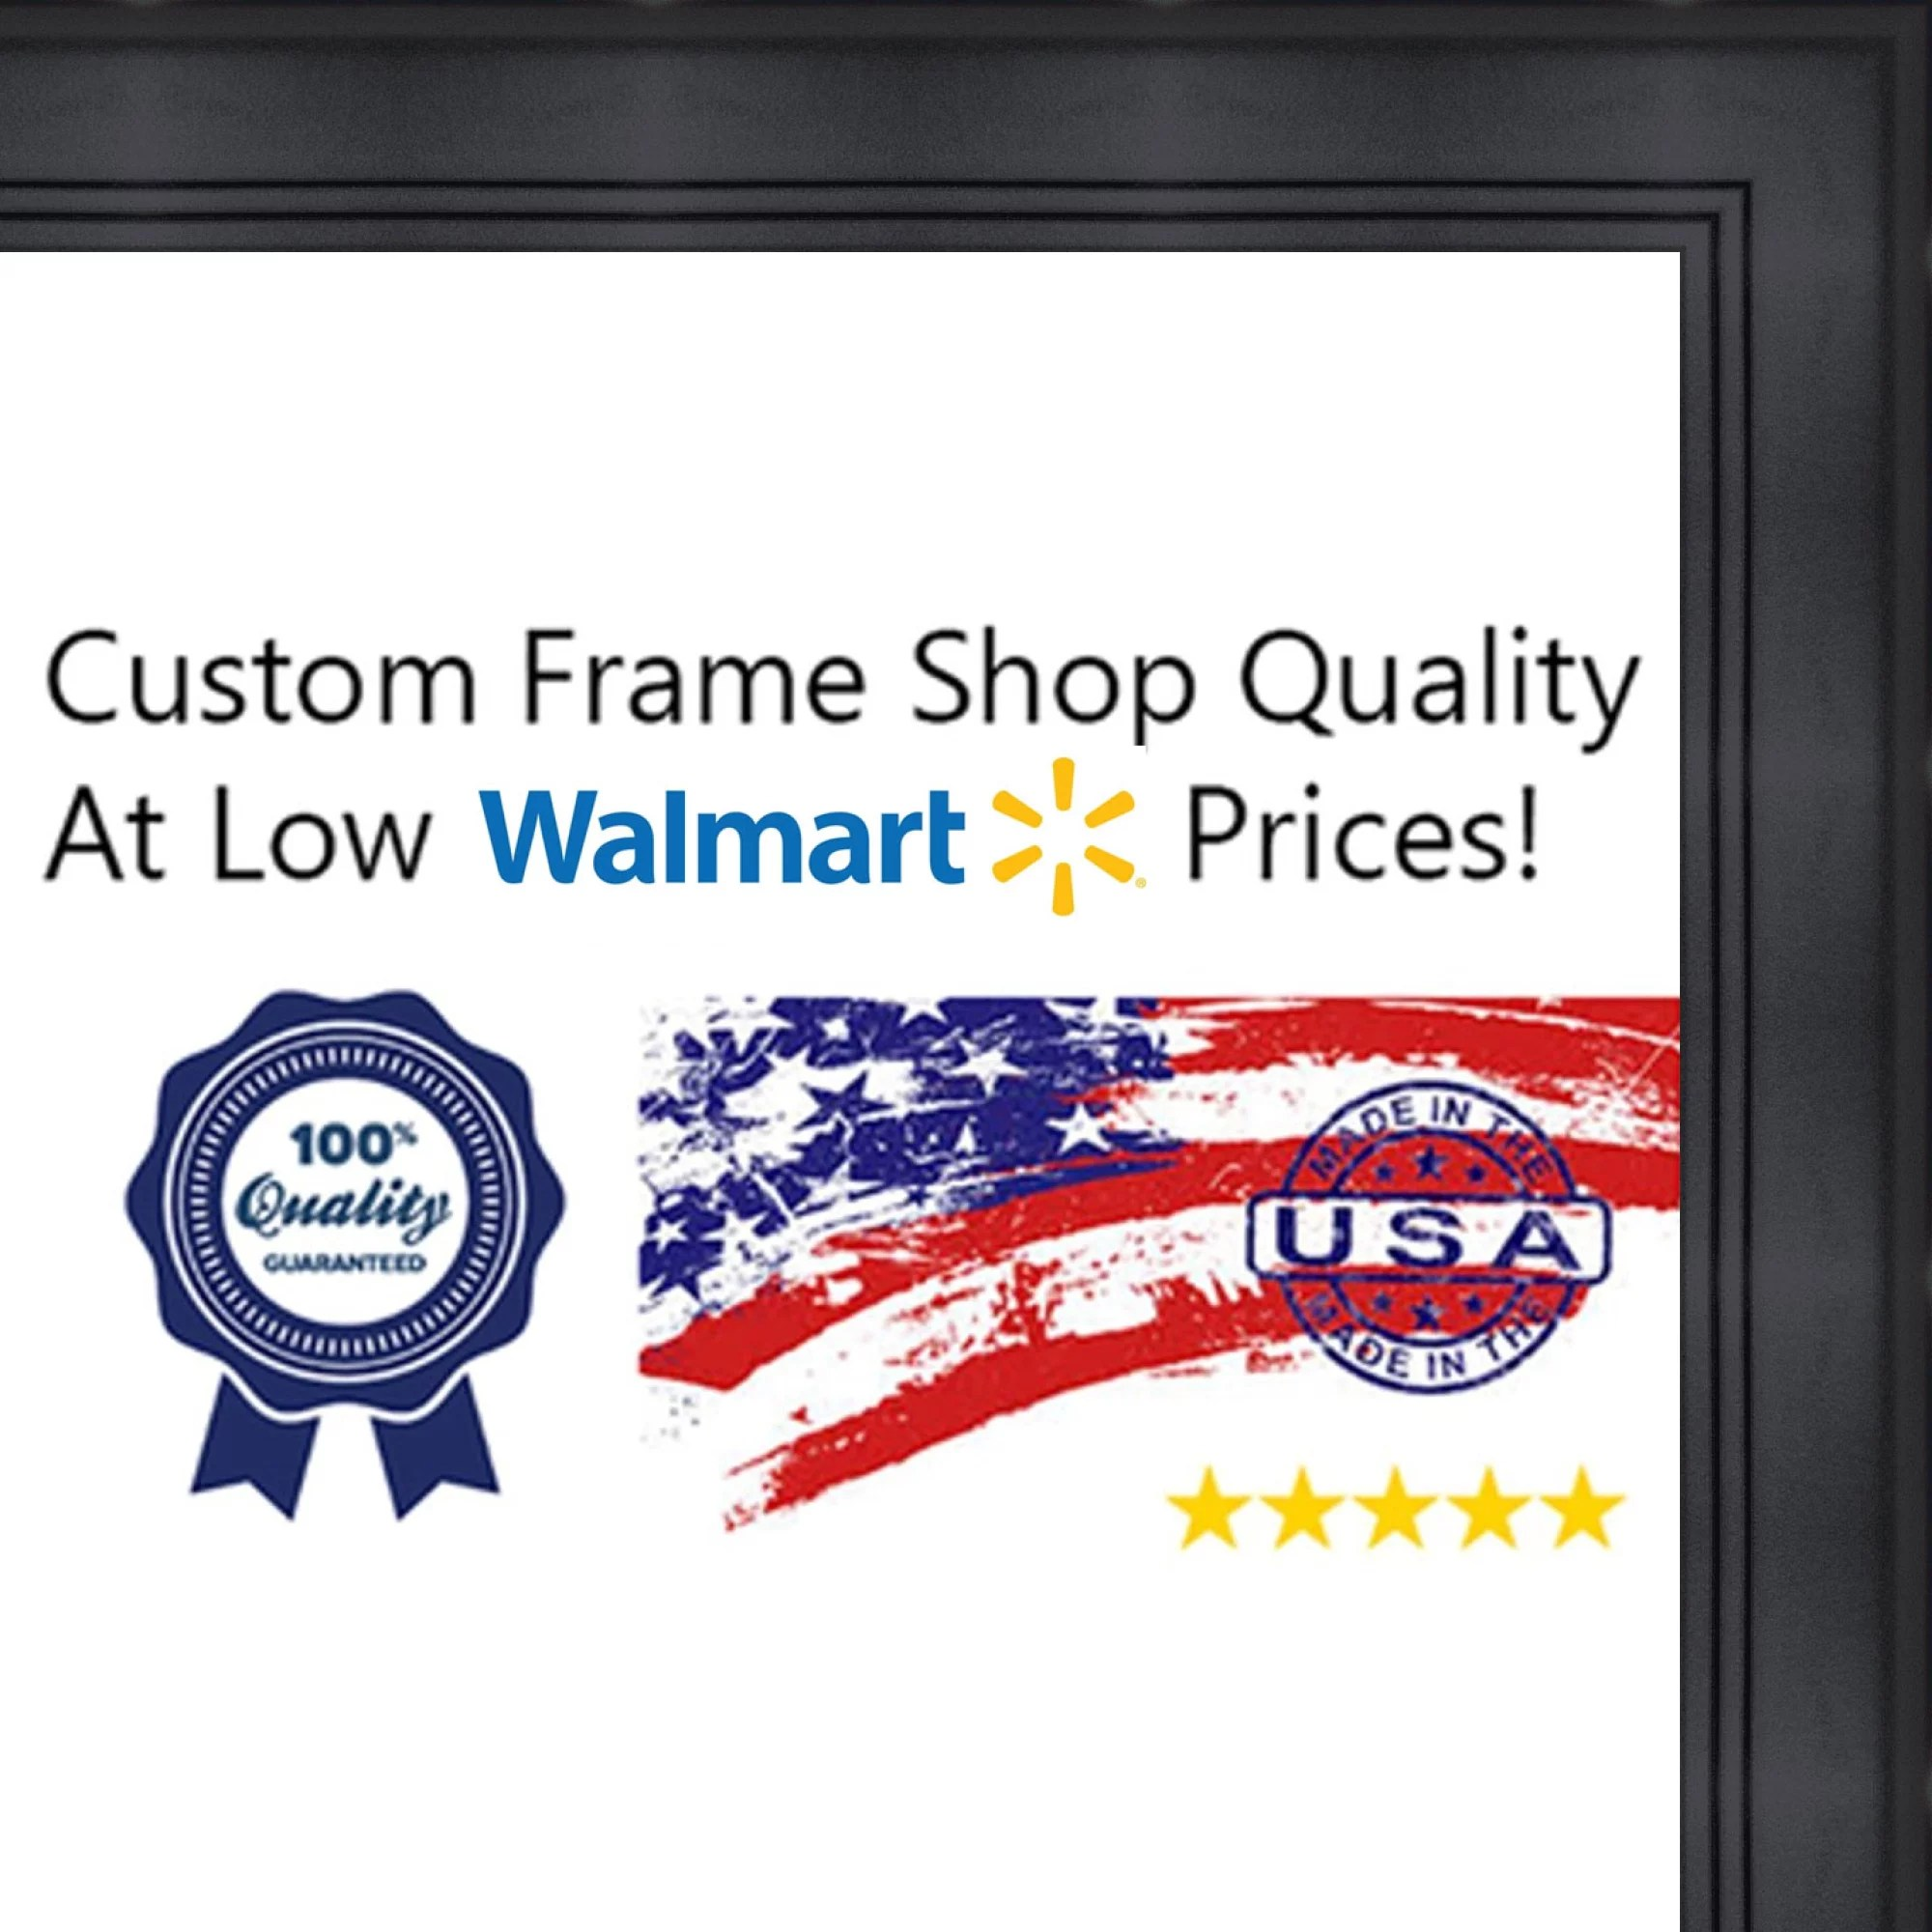 30x40 30 x 40 contemporary black solid wood frame with uv framer s acrylic foam board backing great for a pho